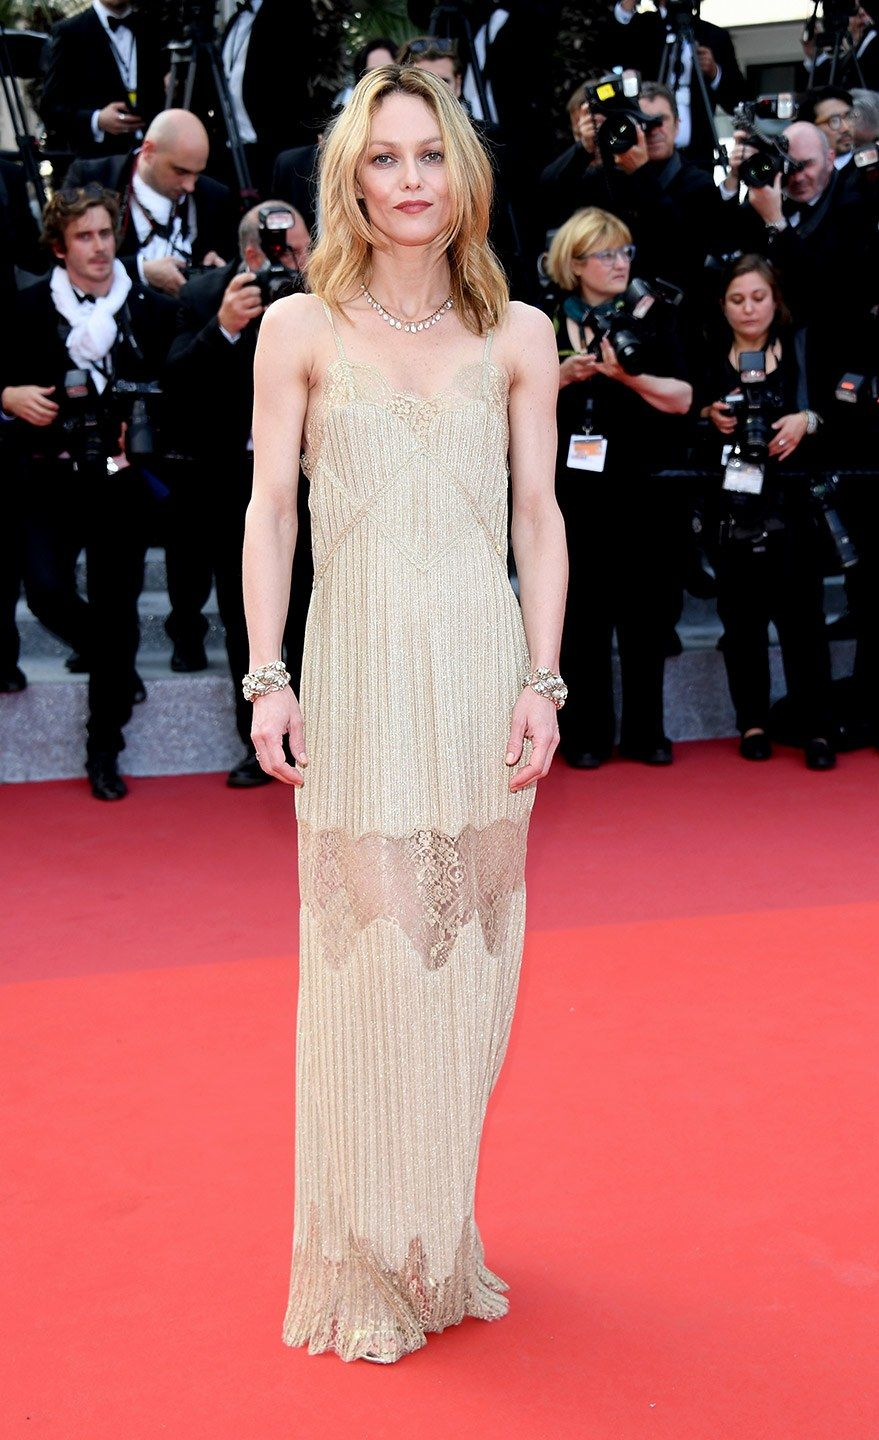 The 2016 Cannes Red Carpet's BestDressed Celebrities